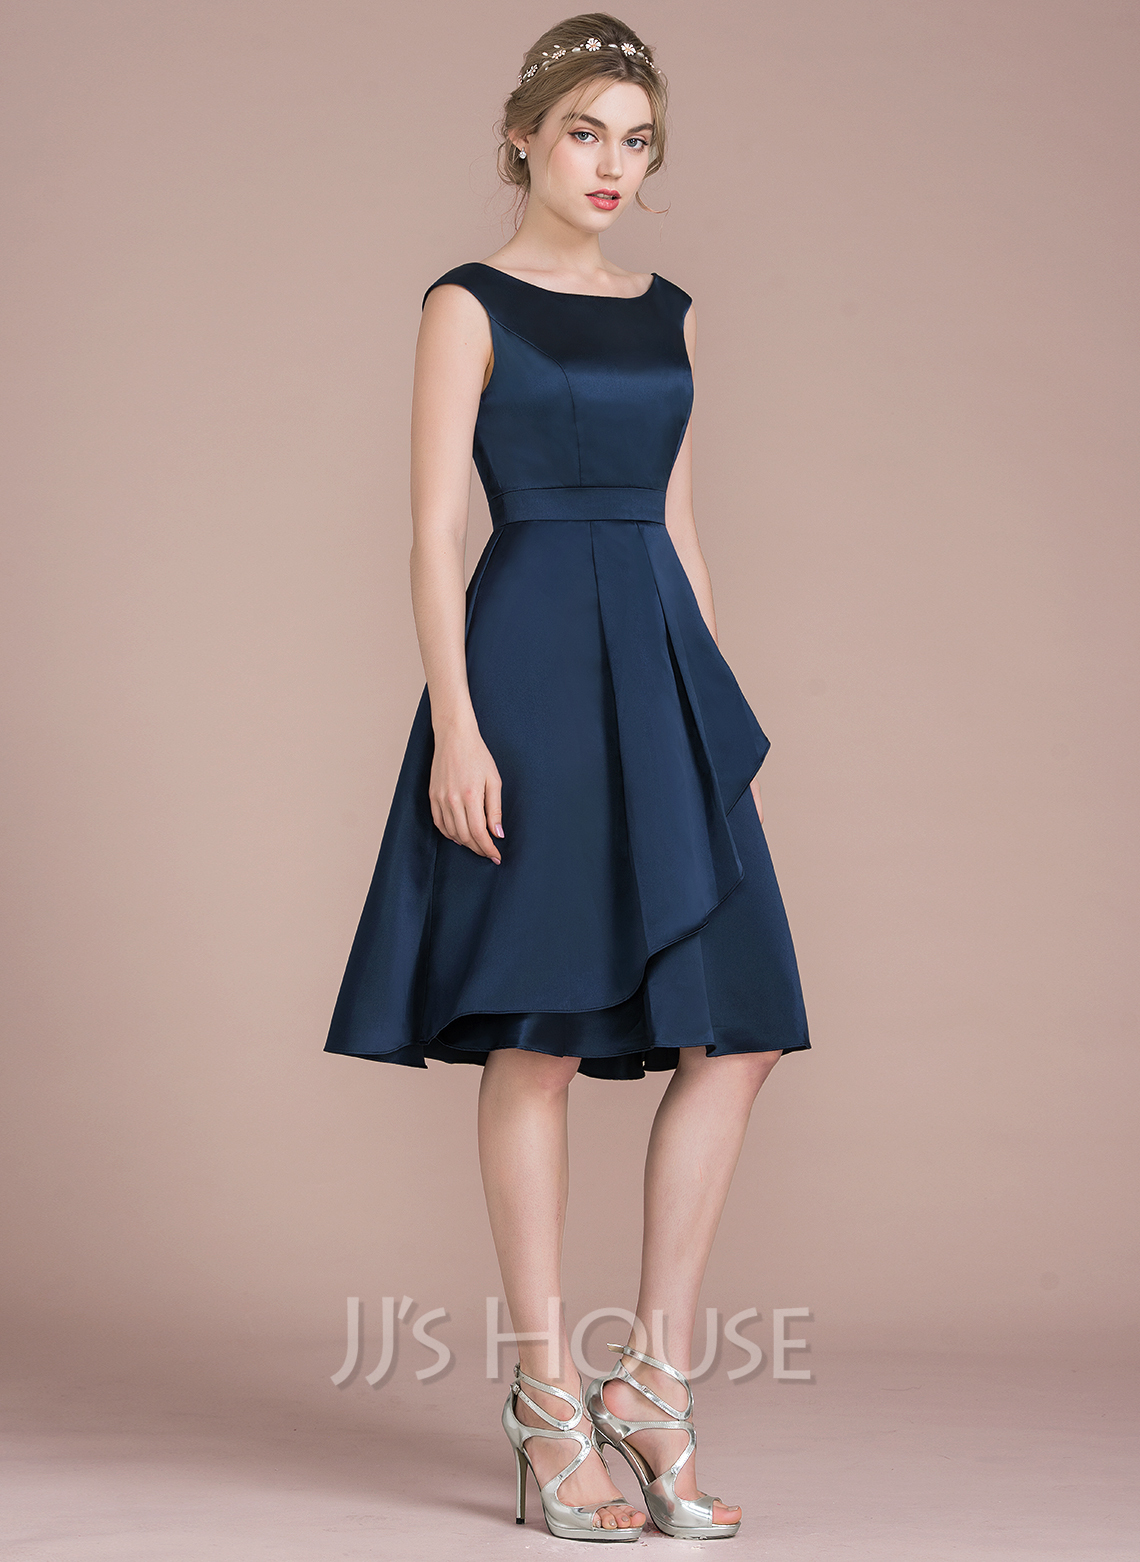 fc61190663e A-Line Princess Scoop Neck Knee-Length Satin Bridesmaid Dress With  Cascading Ruffles. Loading zoom